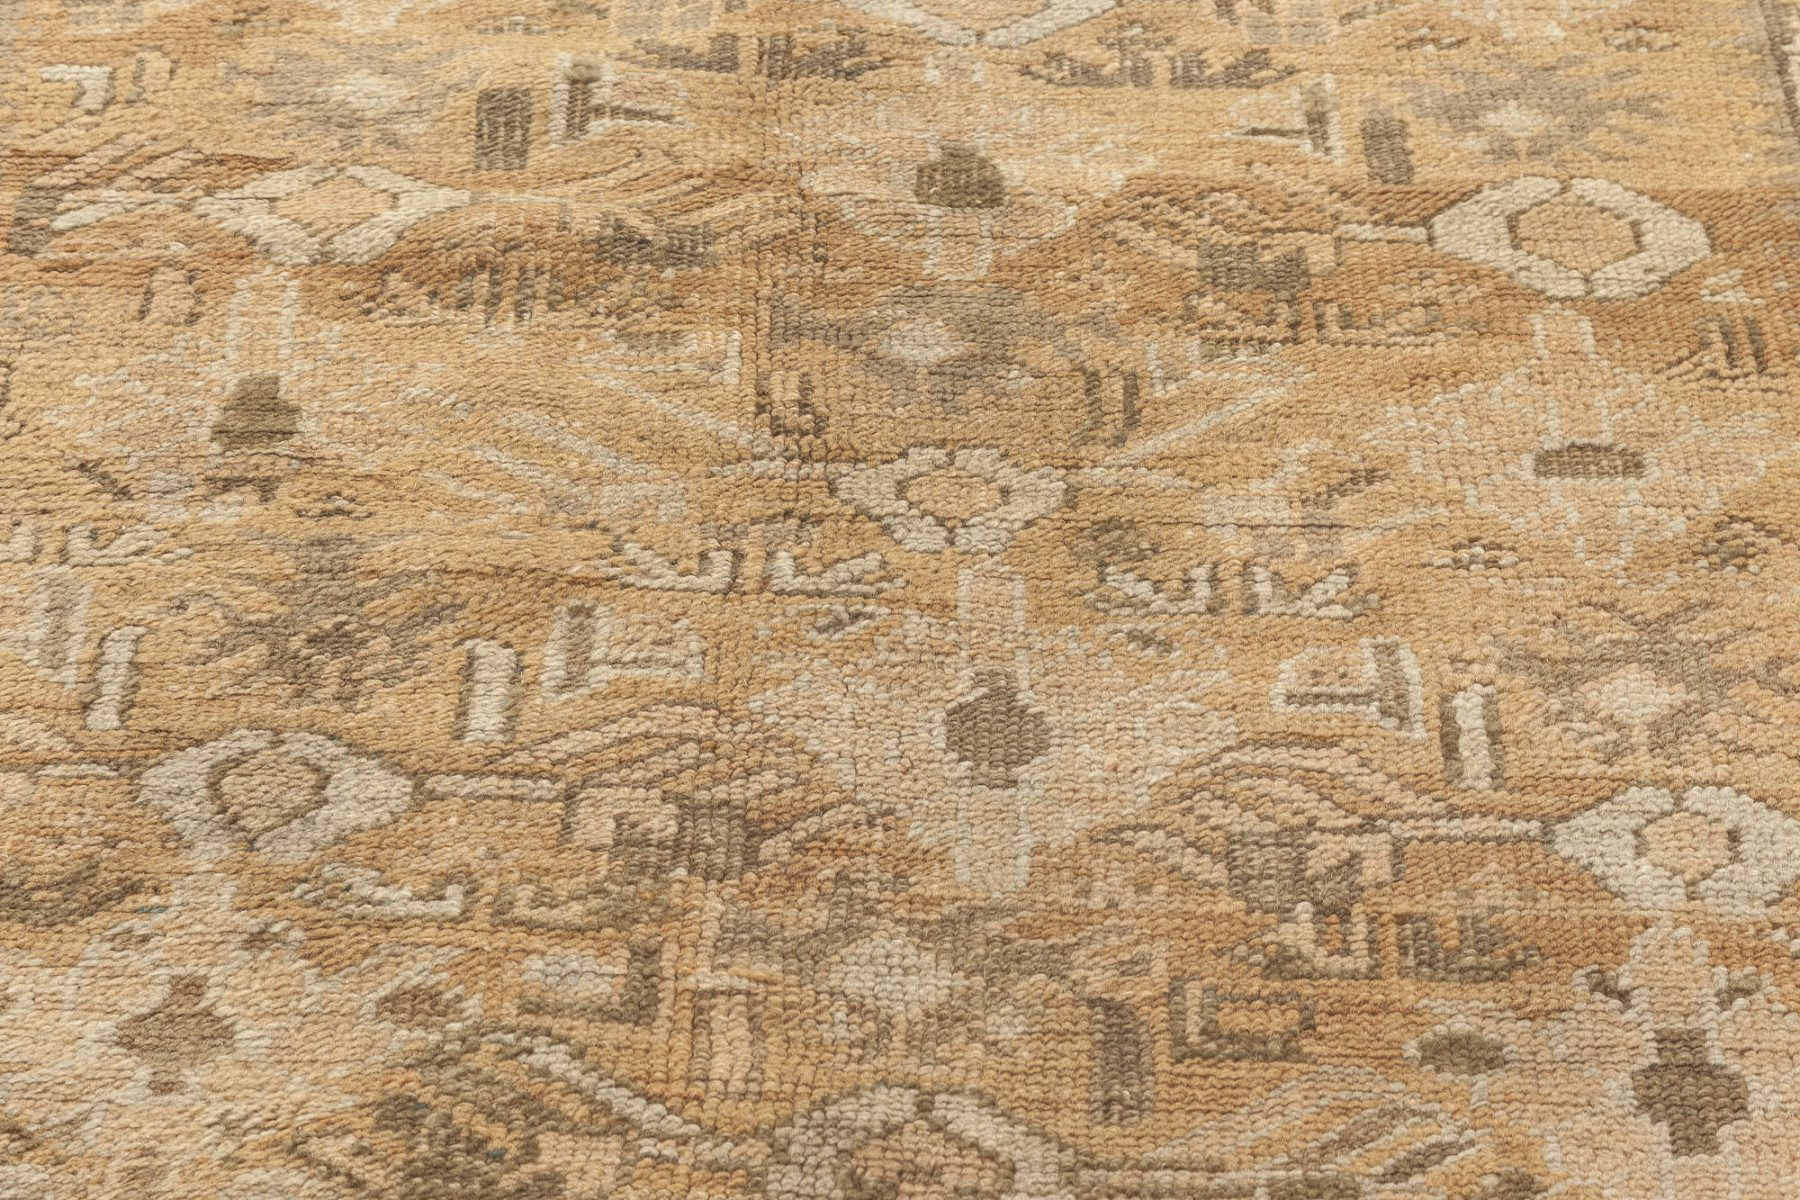 Oushak Beige, Camel, Brown and Ivory Hand Knotted Wool Rug BB7031